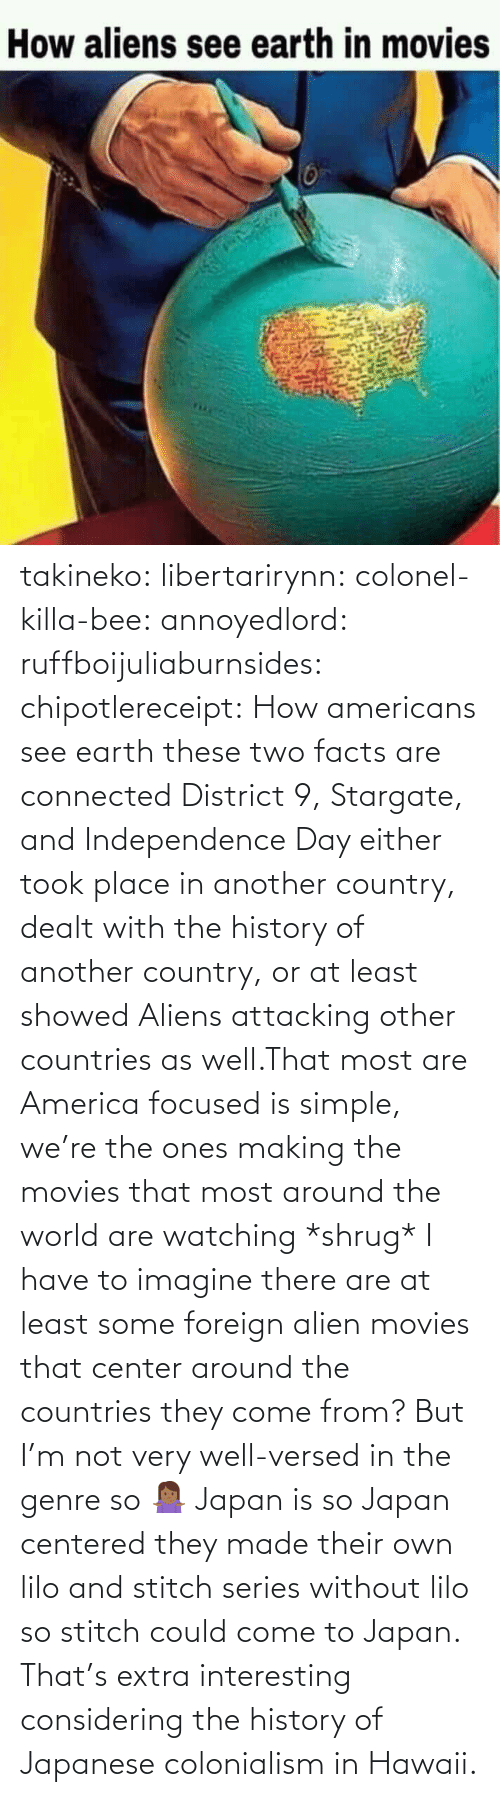 movies: takineko:  libertarirynn:  colonel-killa-bee:  annoyedlord: ruffboijuliaburnsides:  chipotlereceipt: How americans see earth these two facts are connected     District 9, Stargate, and Independence Day either took place in another country, dealt with the history of another country, or at least showed Aliens attacking other countries as well.That most are America focused is simple, we're the ones making the movies that most around the world are watching *shrug*   I have to imagine there are at least some foreign alien movies that center around the countries they come from? But I'm not very well-versed in the genre so 🤷🏾‍♀️   Japan is so Japan centered they made their own lilo and stitch series without lilo so stitch could come to Japan.    That's extra interesting considering the history of Japanese colonialism in Hawaii.